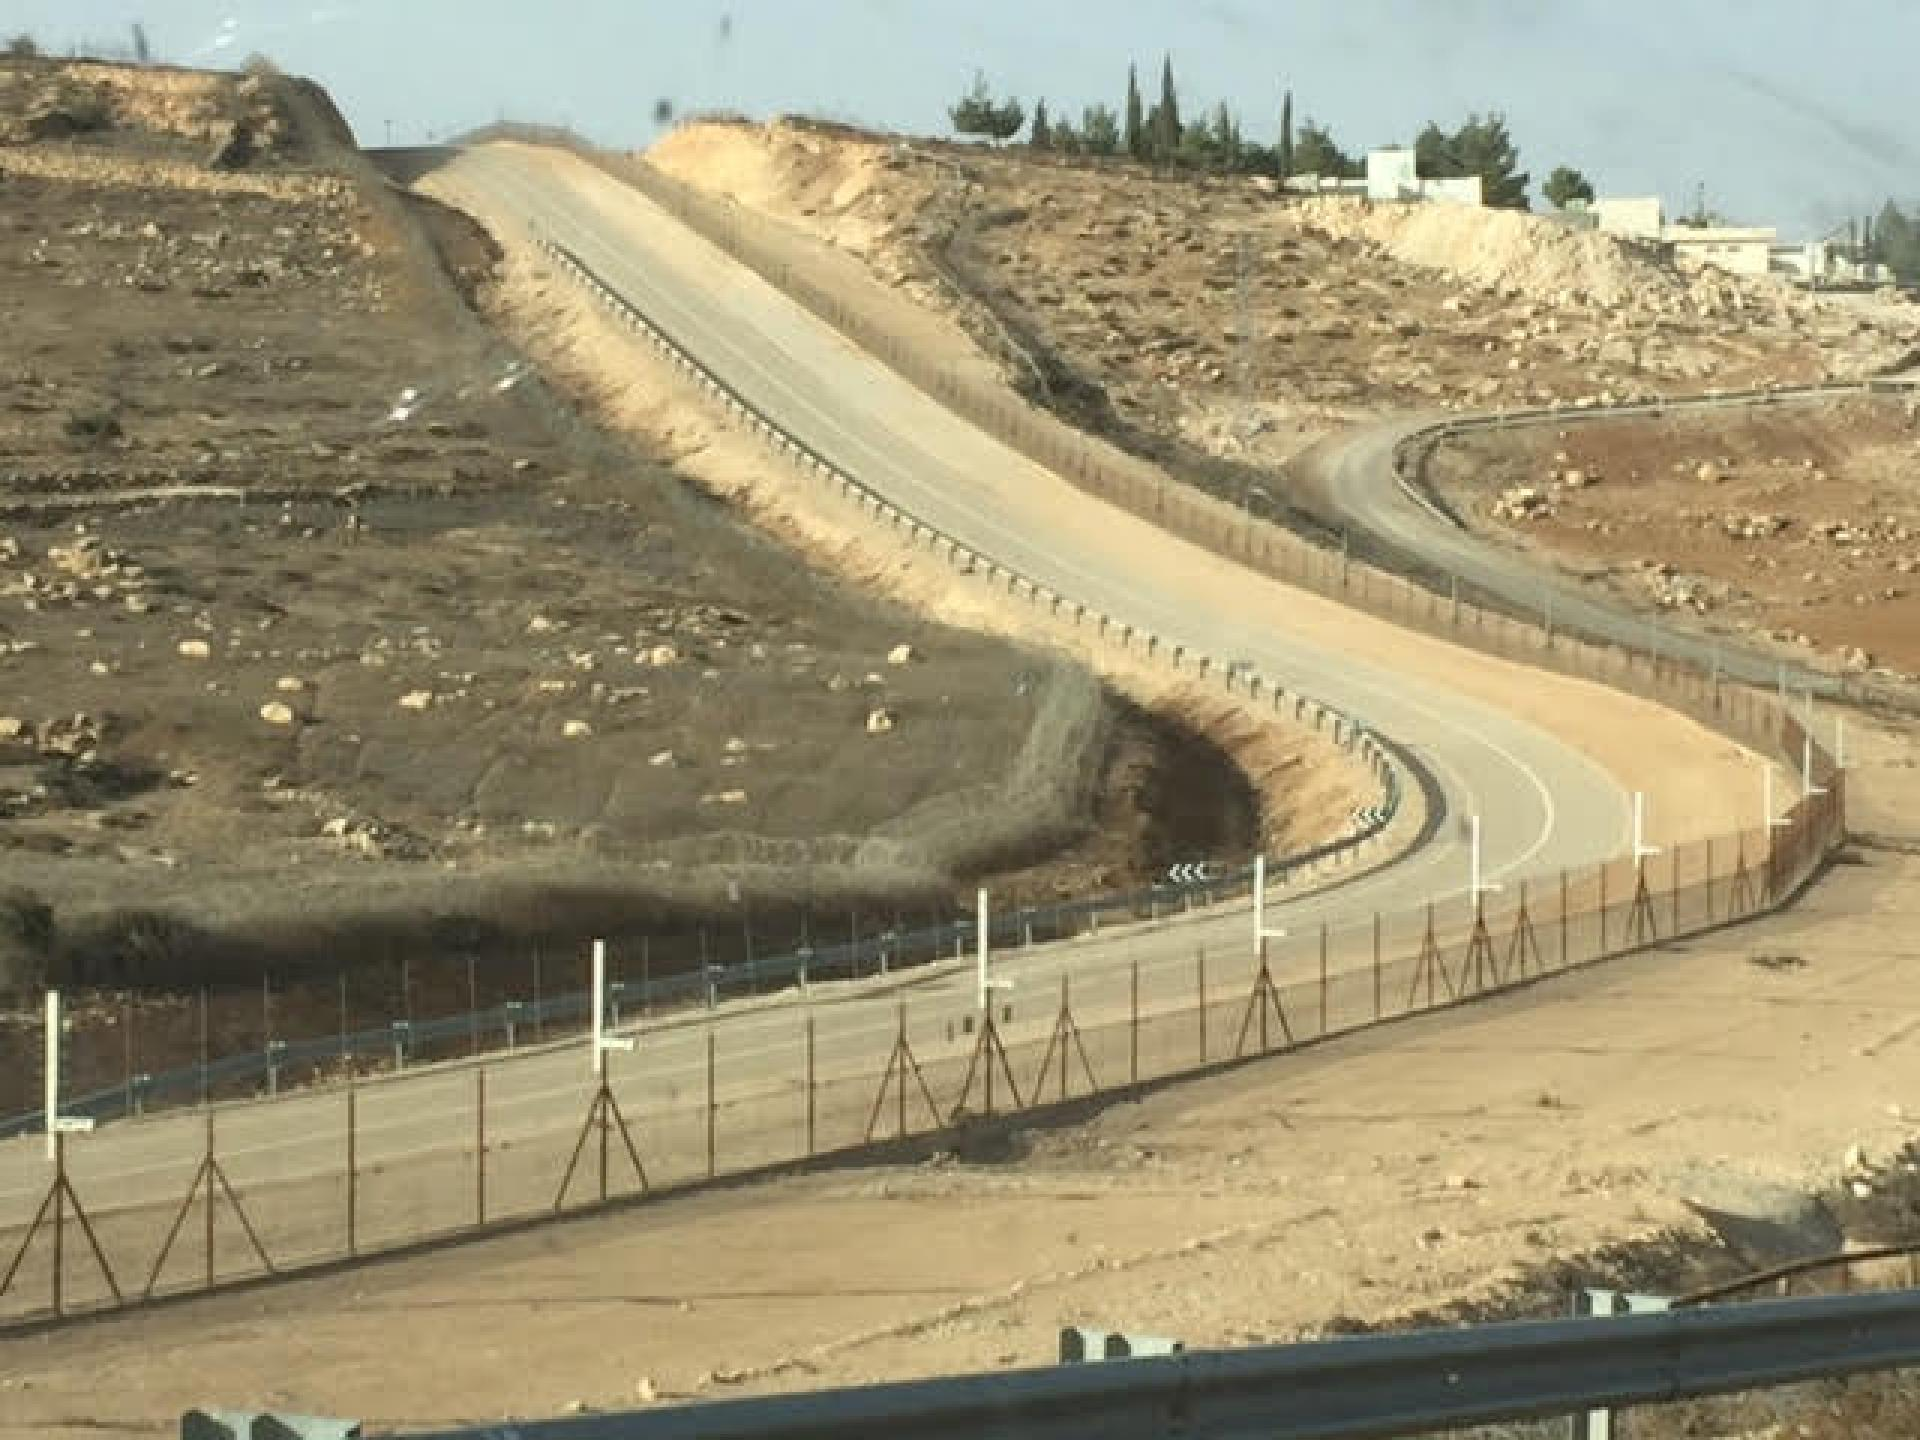 Jura al Kheir: the fence, water facilities and the flowing wastewater